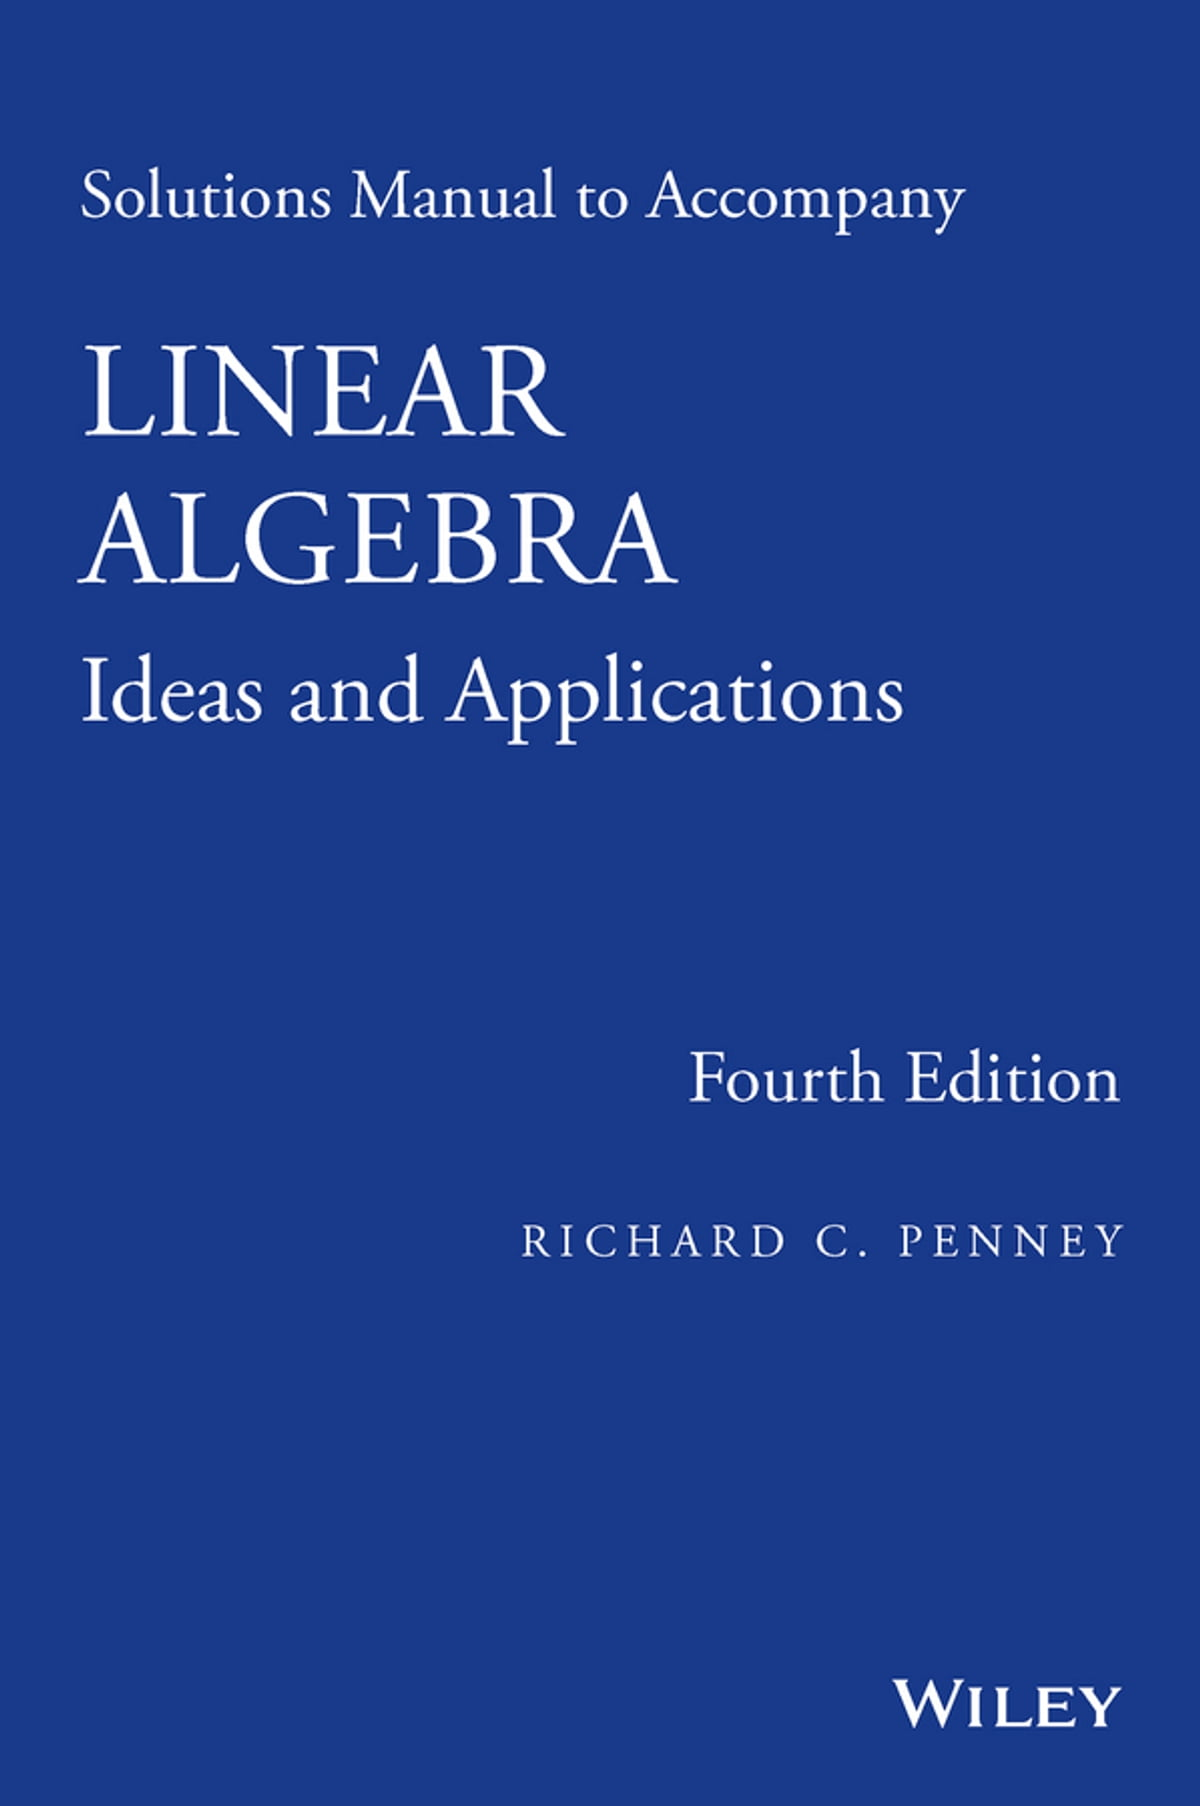 Solutions Manual to Accompany Linear Algebra eBook by Richard C. Penney -  9781118911839 | Rakuten Kobo